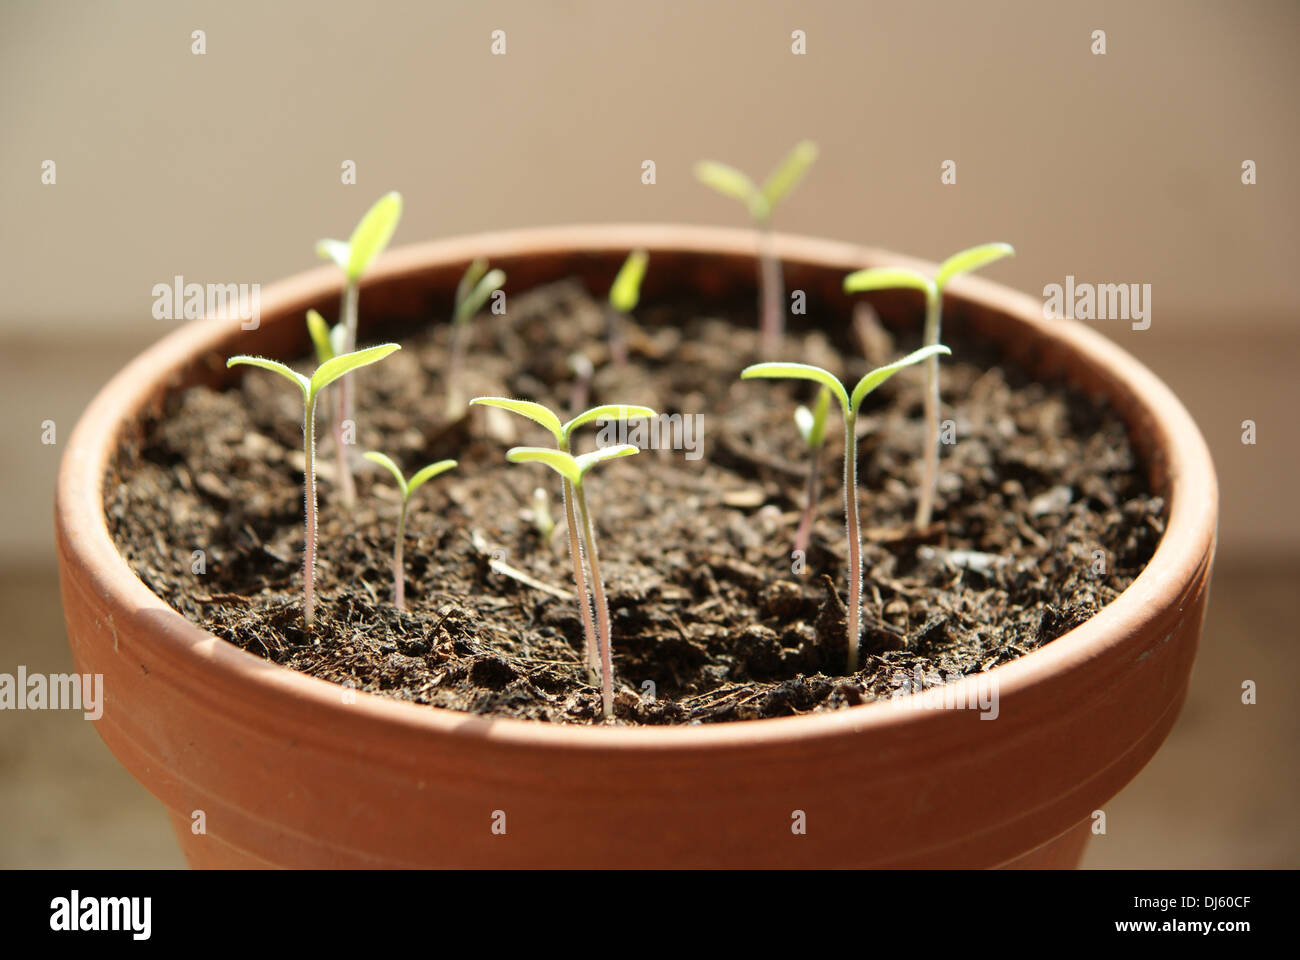 Tomaten Aussaen Stock Photos Tomaten Aussaen Stock Images Alamy